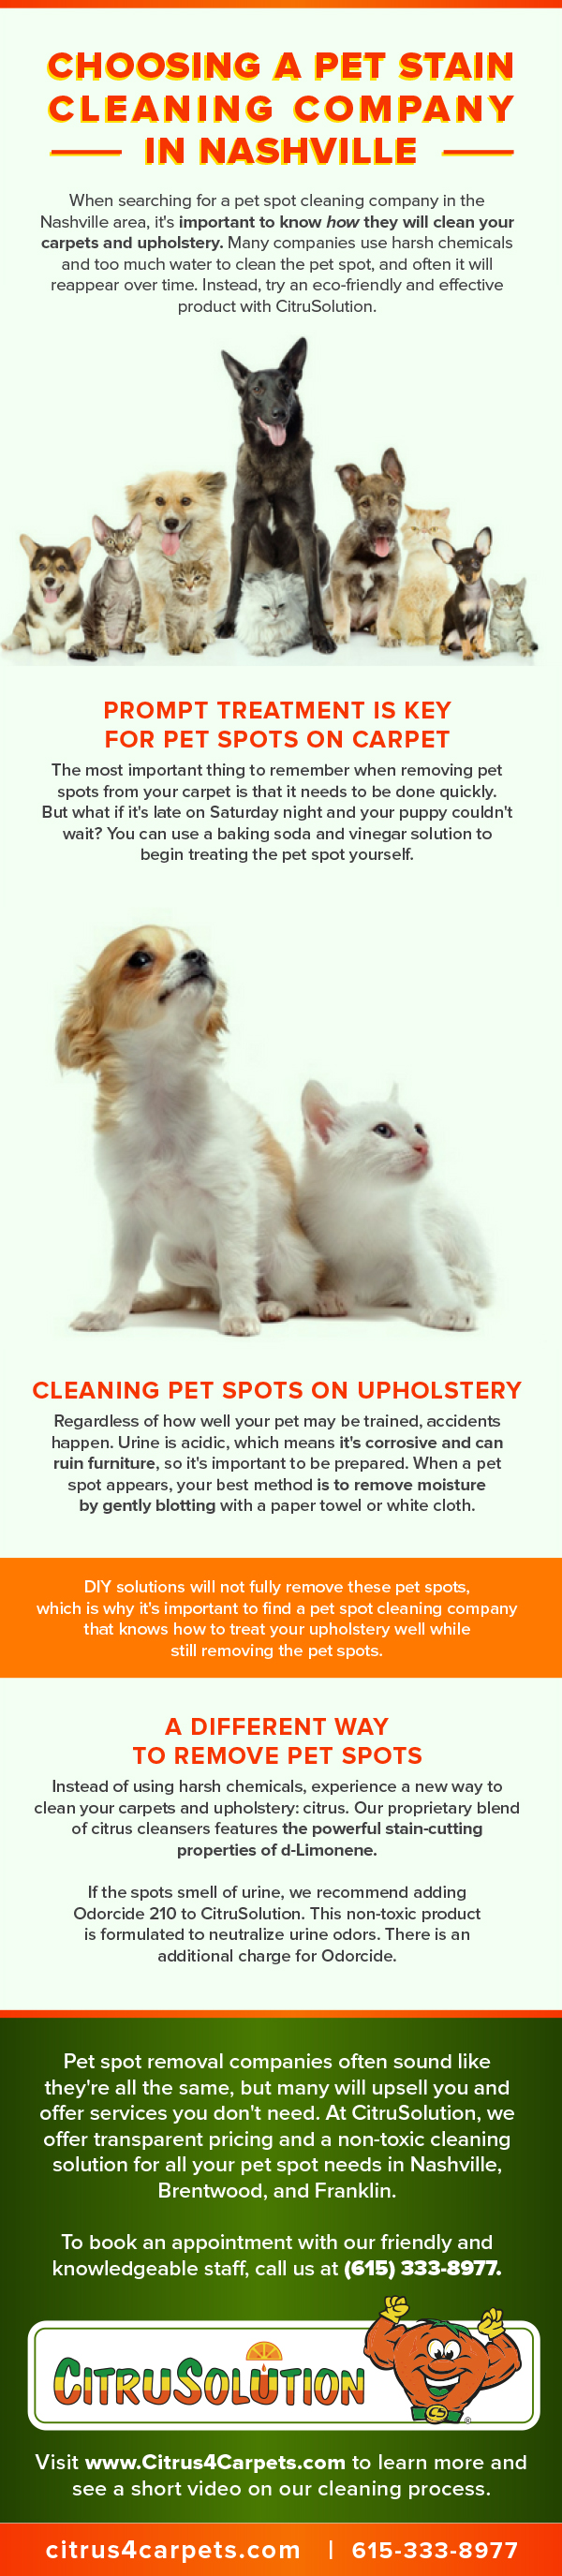 pet-stain-cleaning-company-infographic